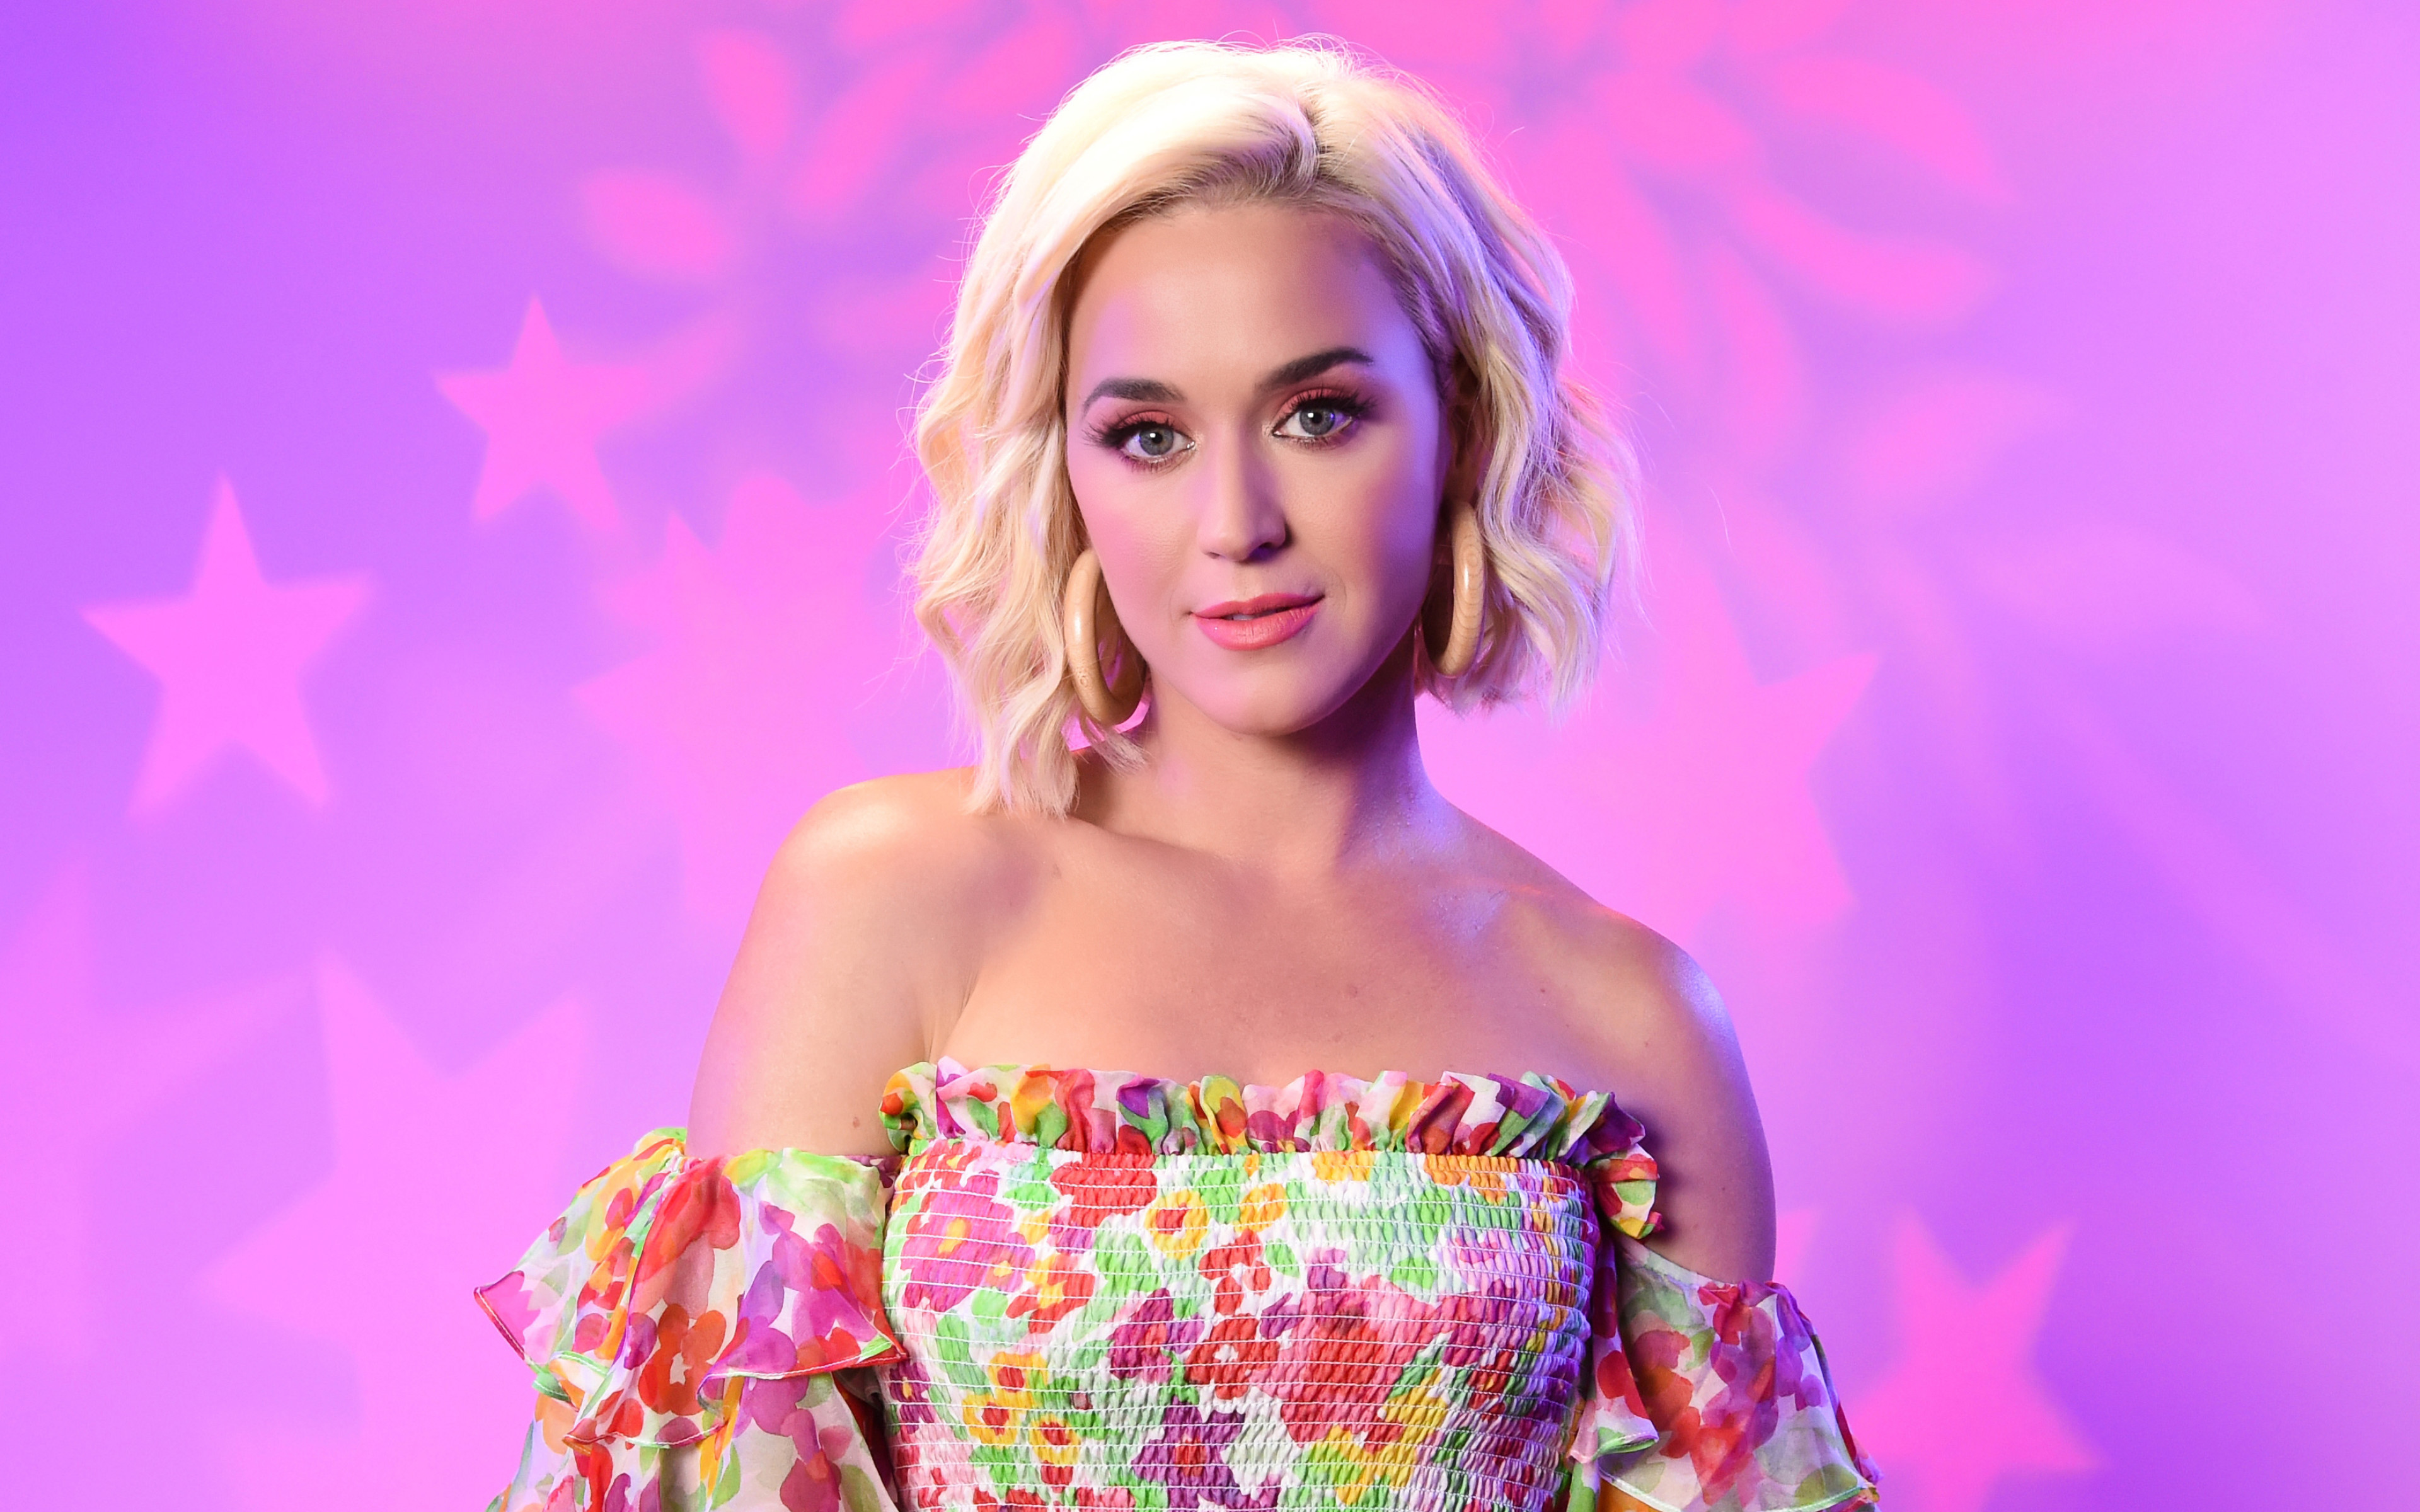 Katy Perry is pregnant with her first child